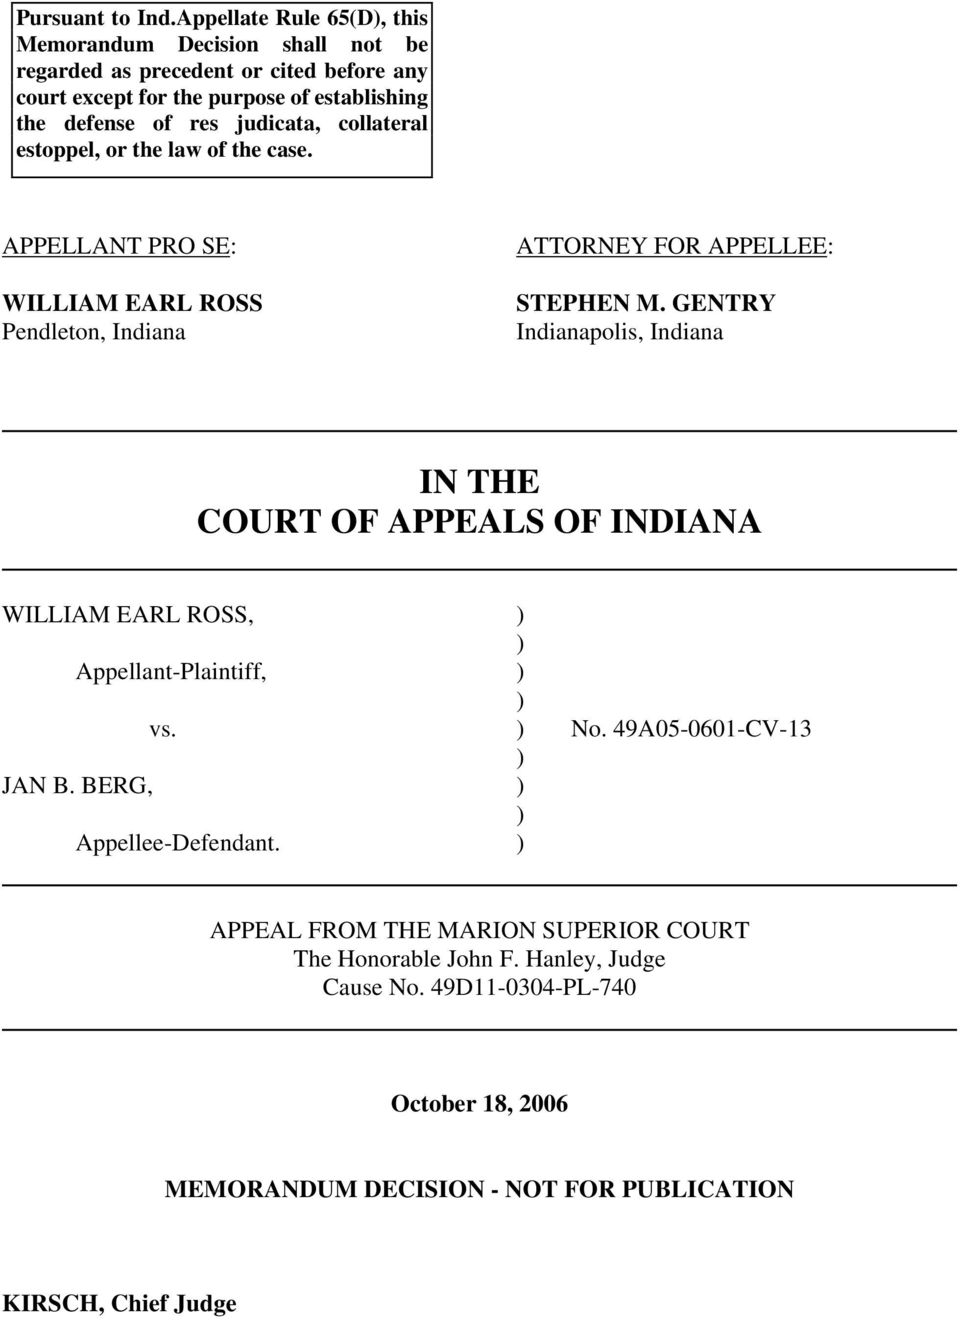 judicata, collateral estoppel, or the law of the case. APPELLANT PRO SE: WILLIAM EARL ROSS Pendleton, Indiana ATTORNEY FOR APPELLEE: STEPHEN M.